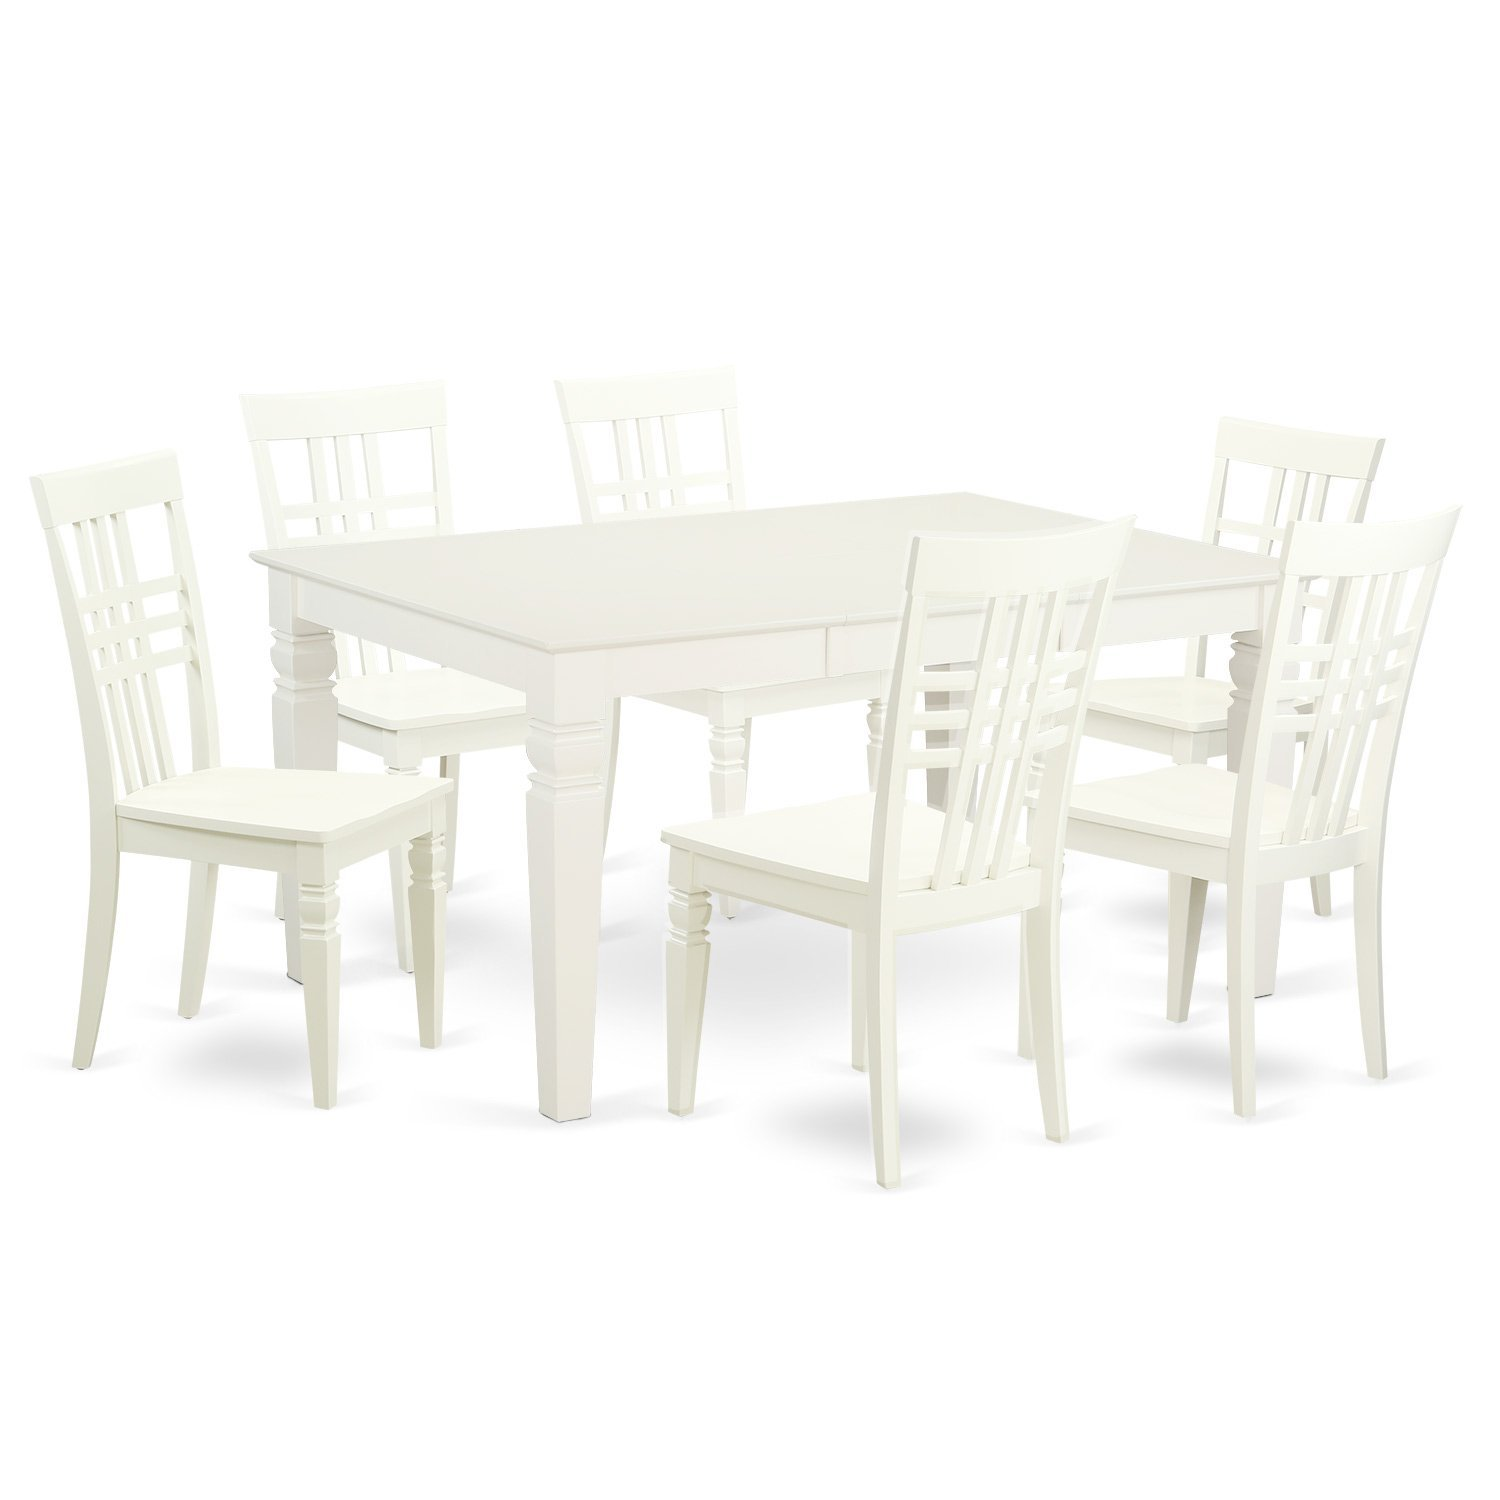 East West Furniture WELG7-LWH-W 7Piece Rectangular Weston Kitchen Table & Six Wood Chairs for Dining Room in Linen White Finish